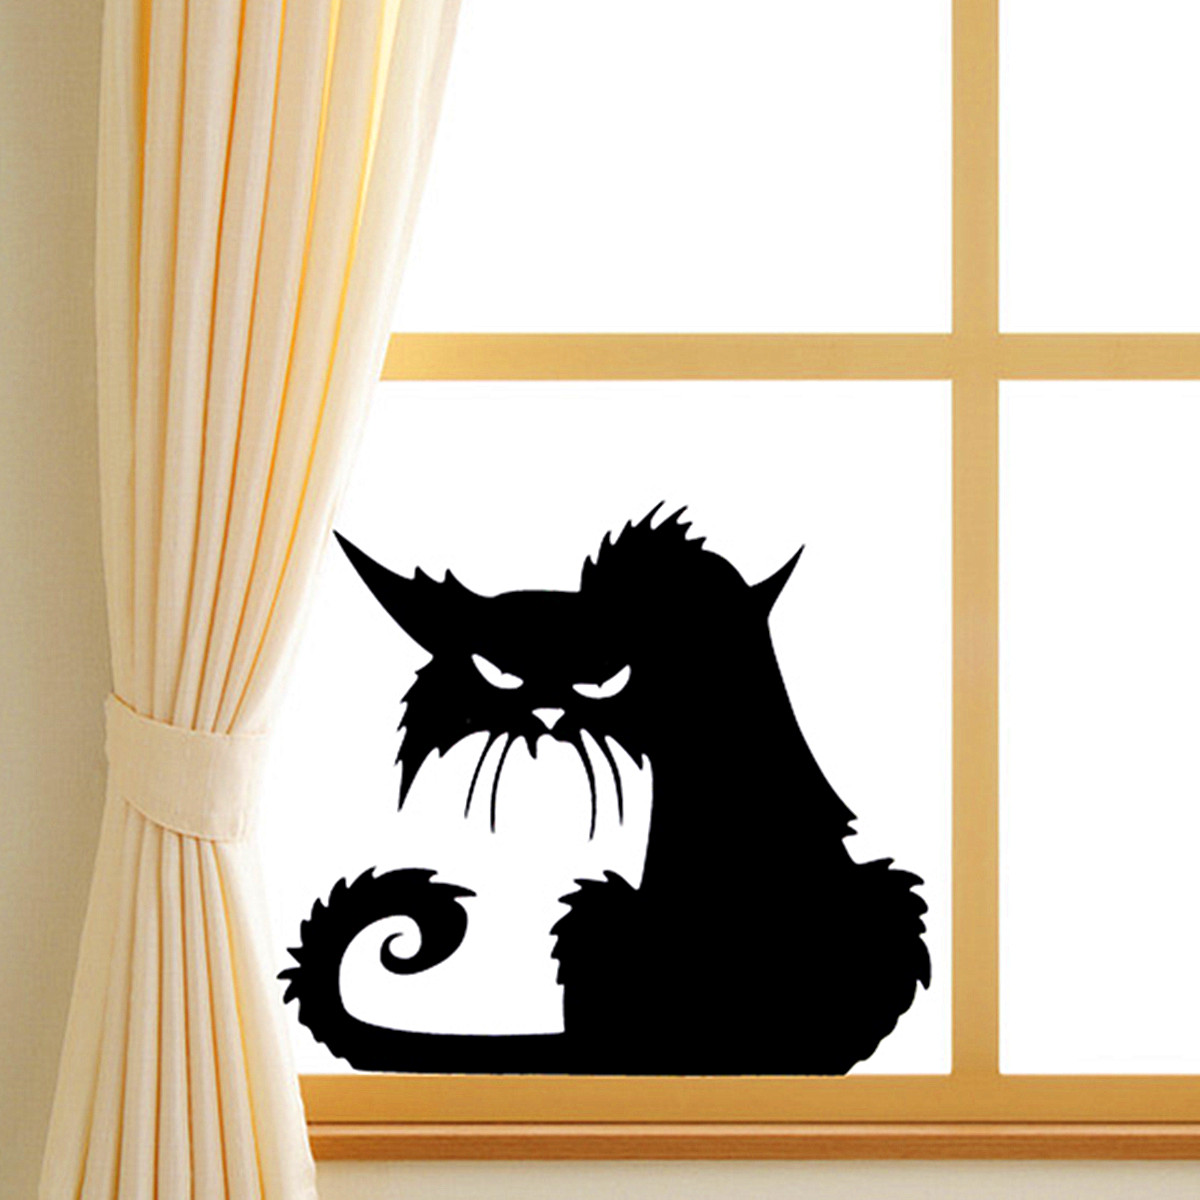 Wall stickers cat - Halloween Scary Black Cat Glass Sticker Halloween Decor